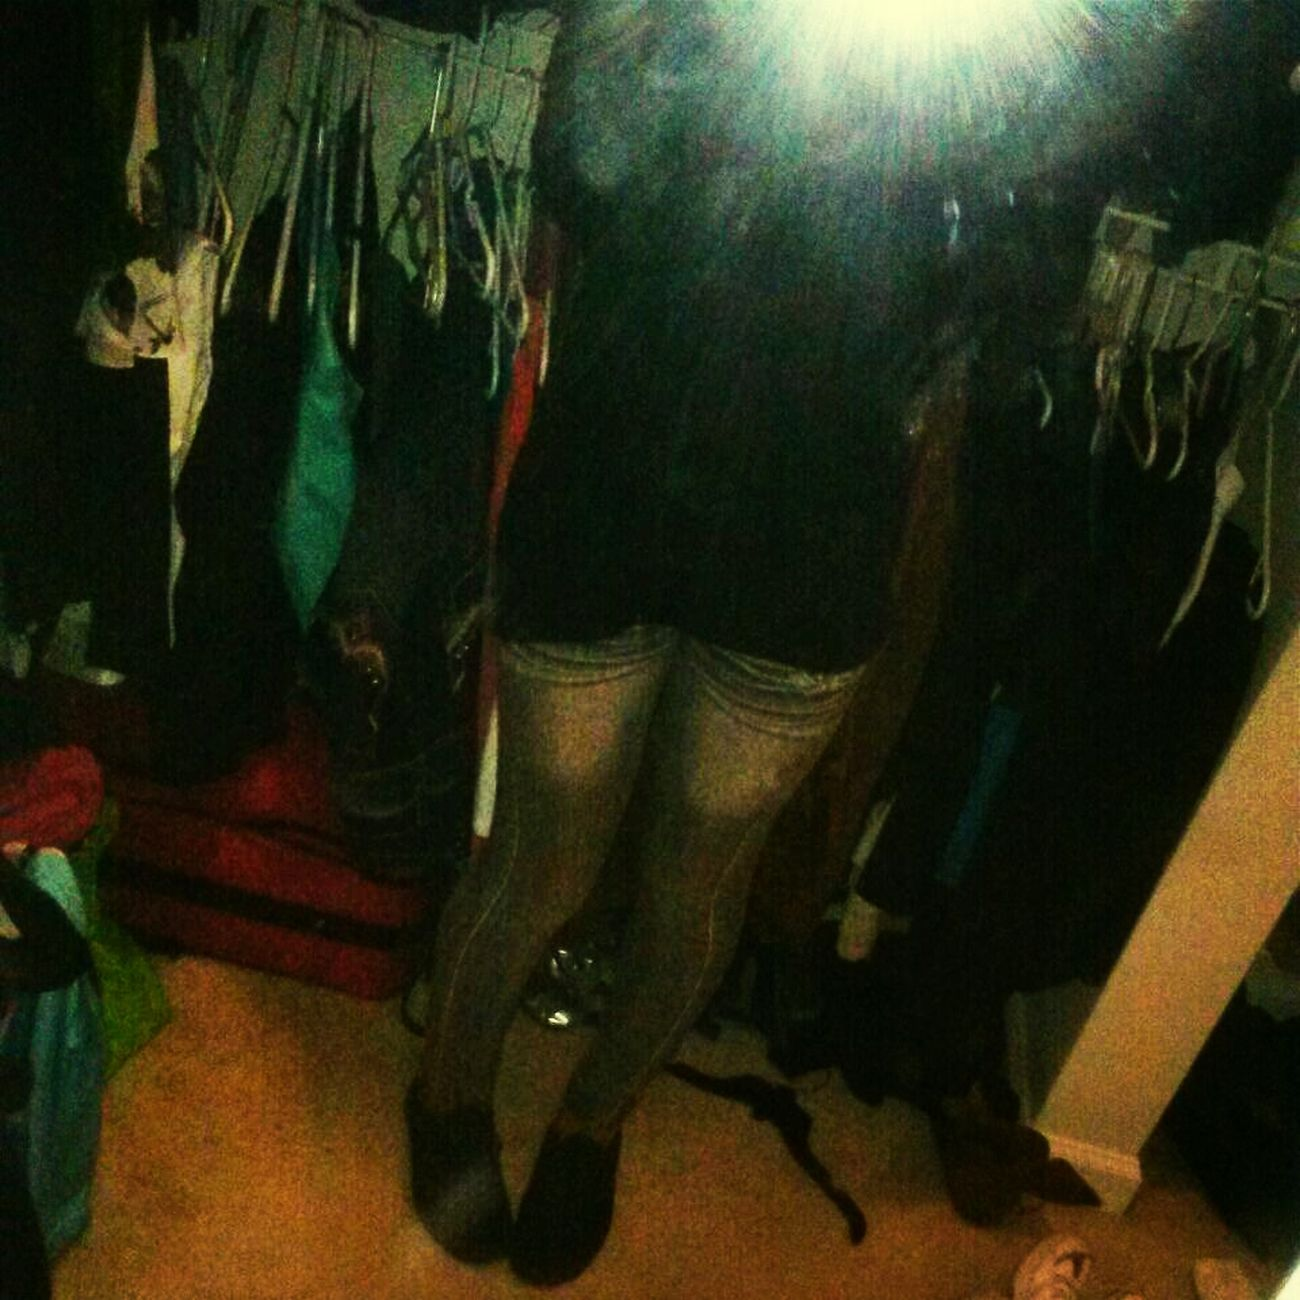 Outfit yesterday